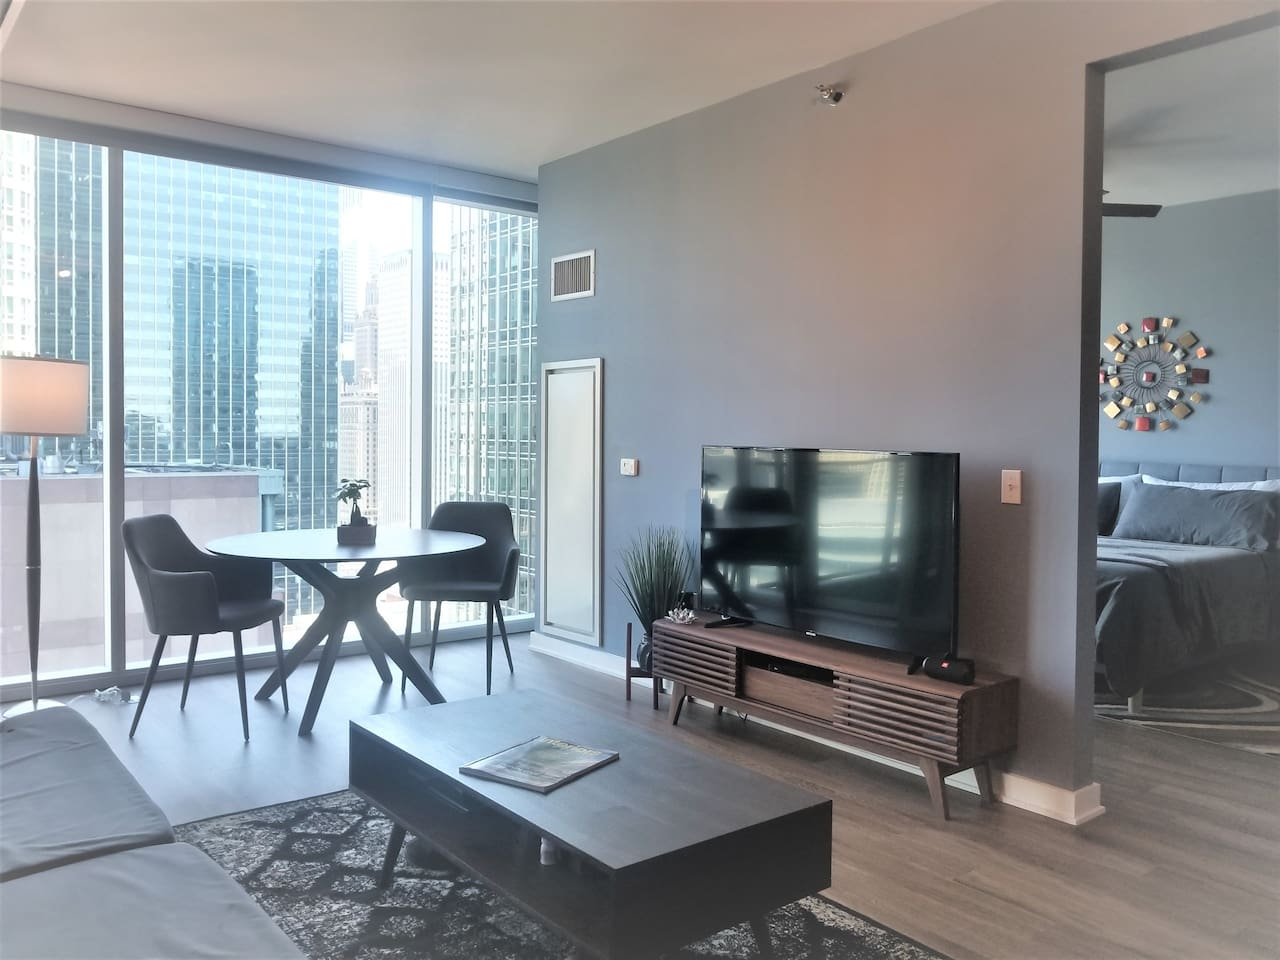 Quality furnishings with thoughtful design for an exception experience!    Floor to Ceiling / Wall to Wall windows to take in the amazing city with some river views!